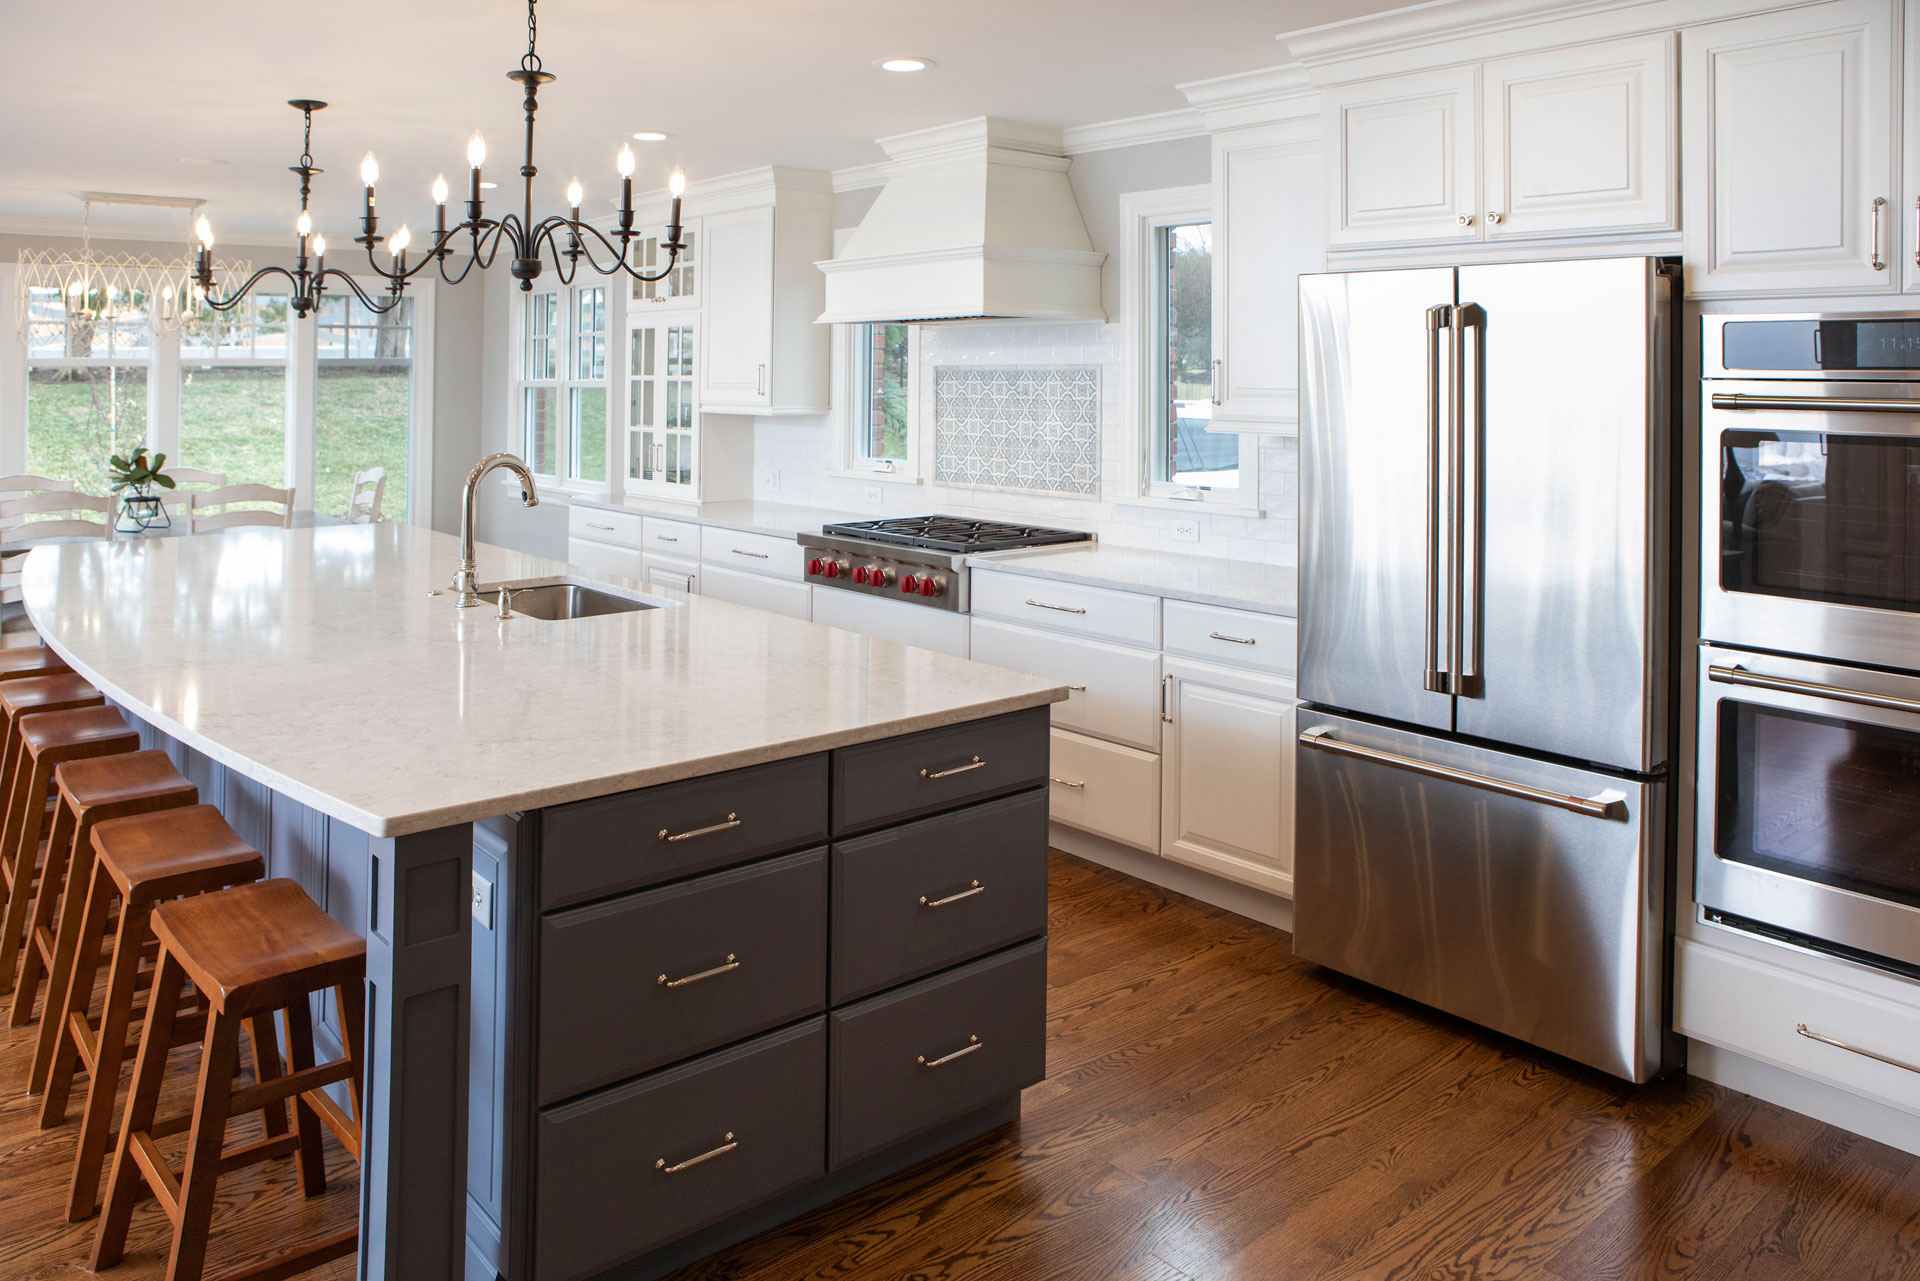 Roeser-Home-Remodeling-St-Louis-Fox-Estates-Kitchen-1